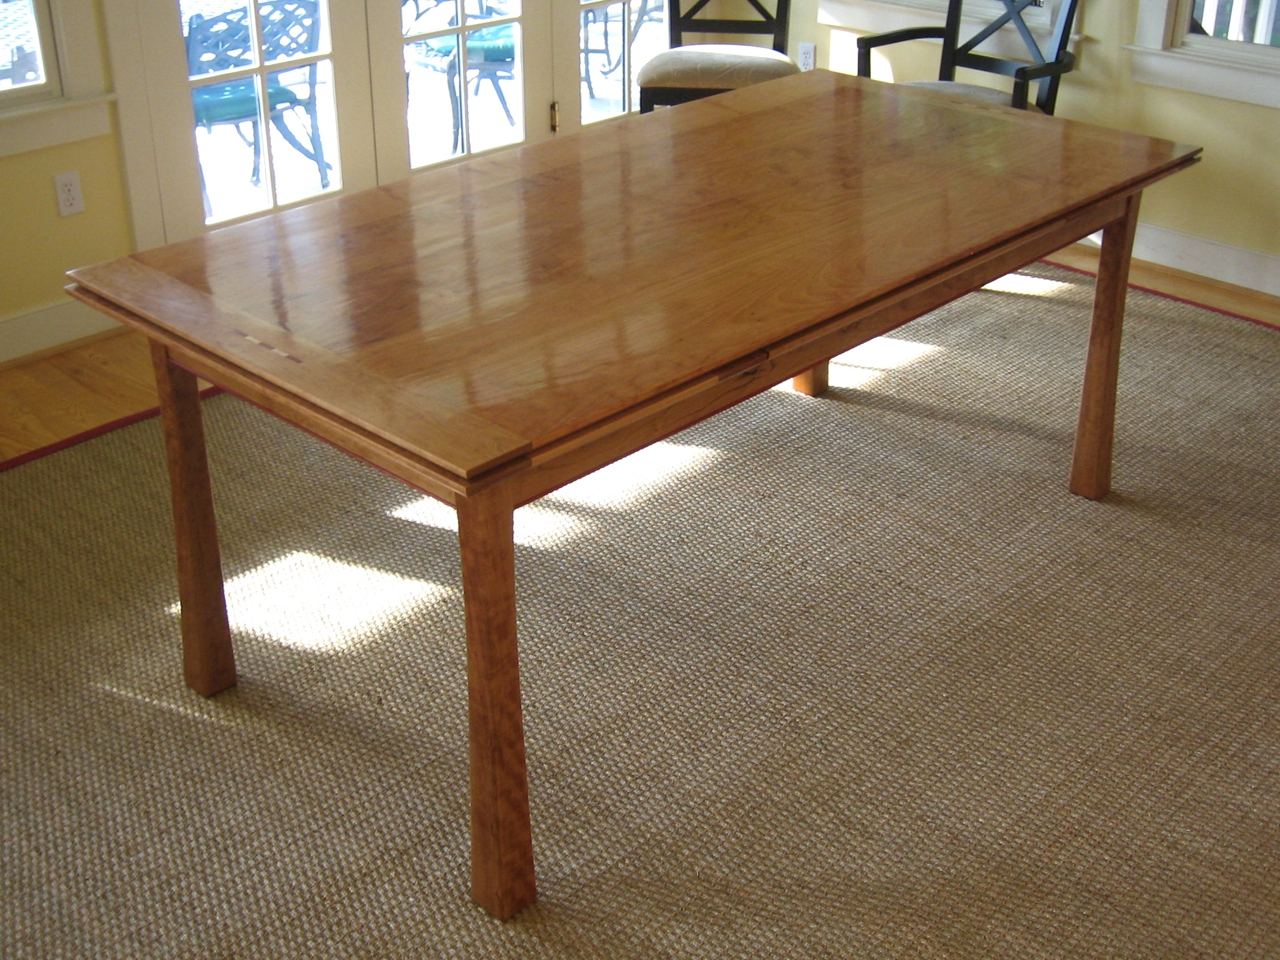 7s0qr9eRK7siF5rMoMHQ Dutch Pull Out Dining Table by Joseph Murphy Furniture Maker at CustomMade.com